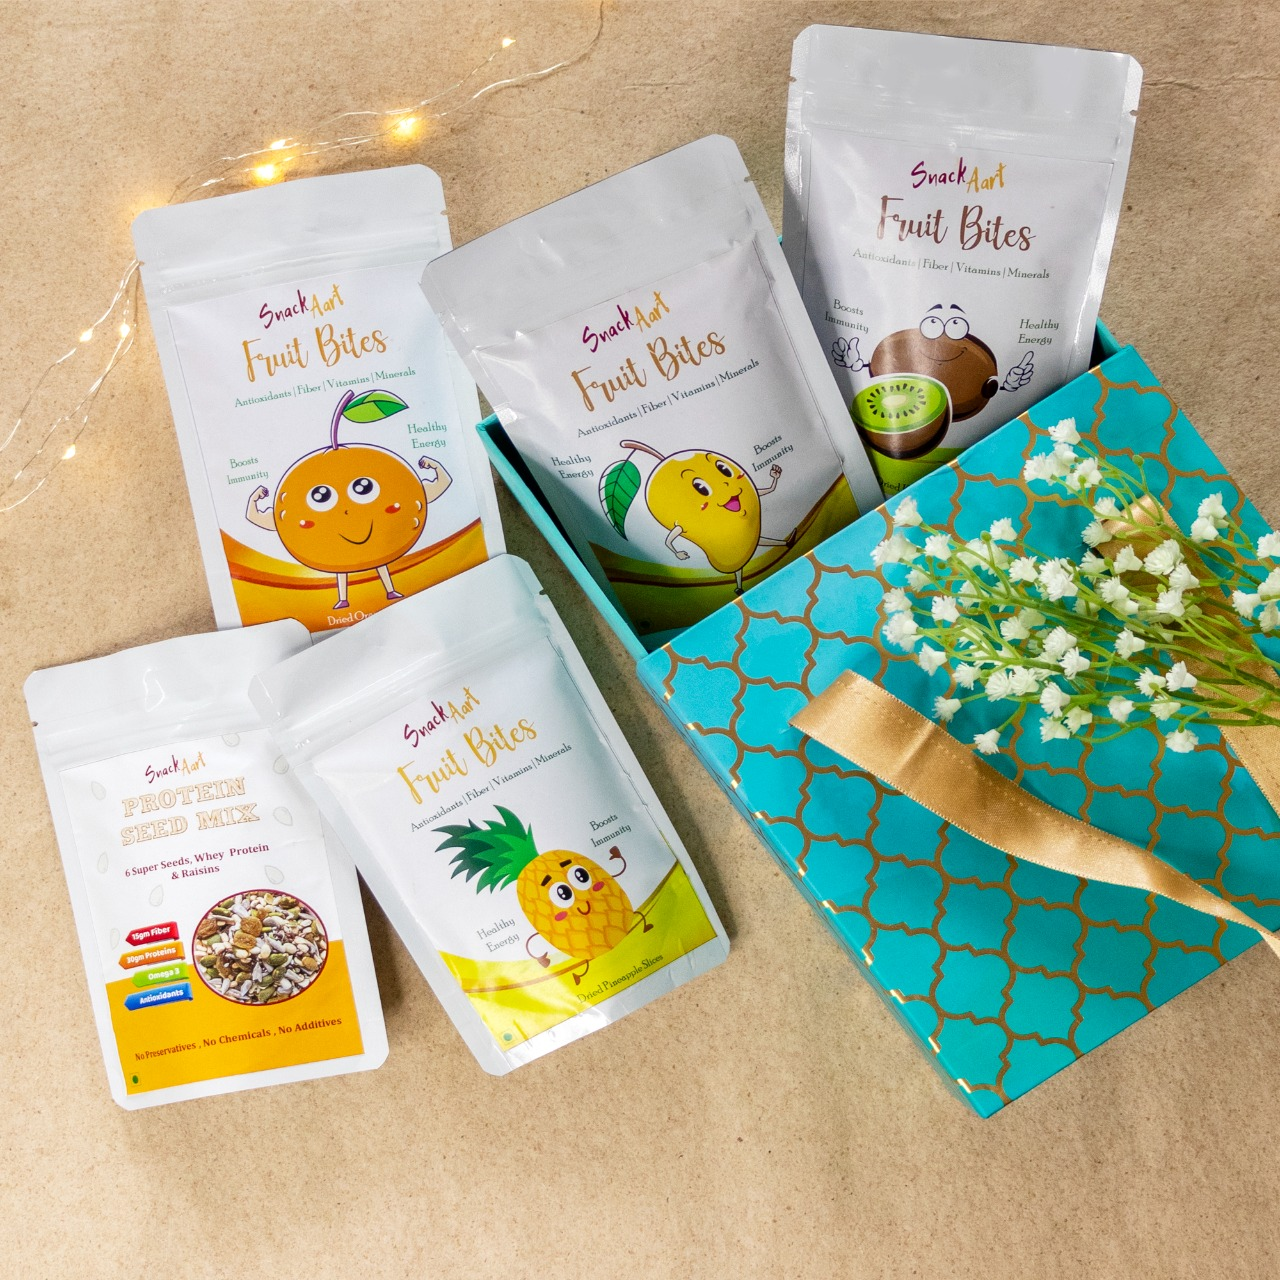 Healthy sweet diwali gift box- contains dried fruits and seed mix